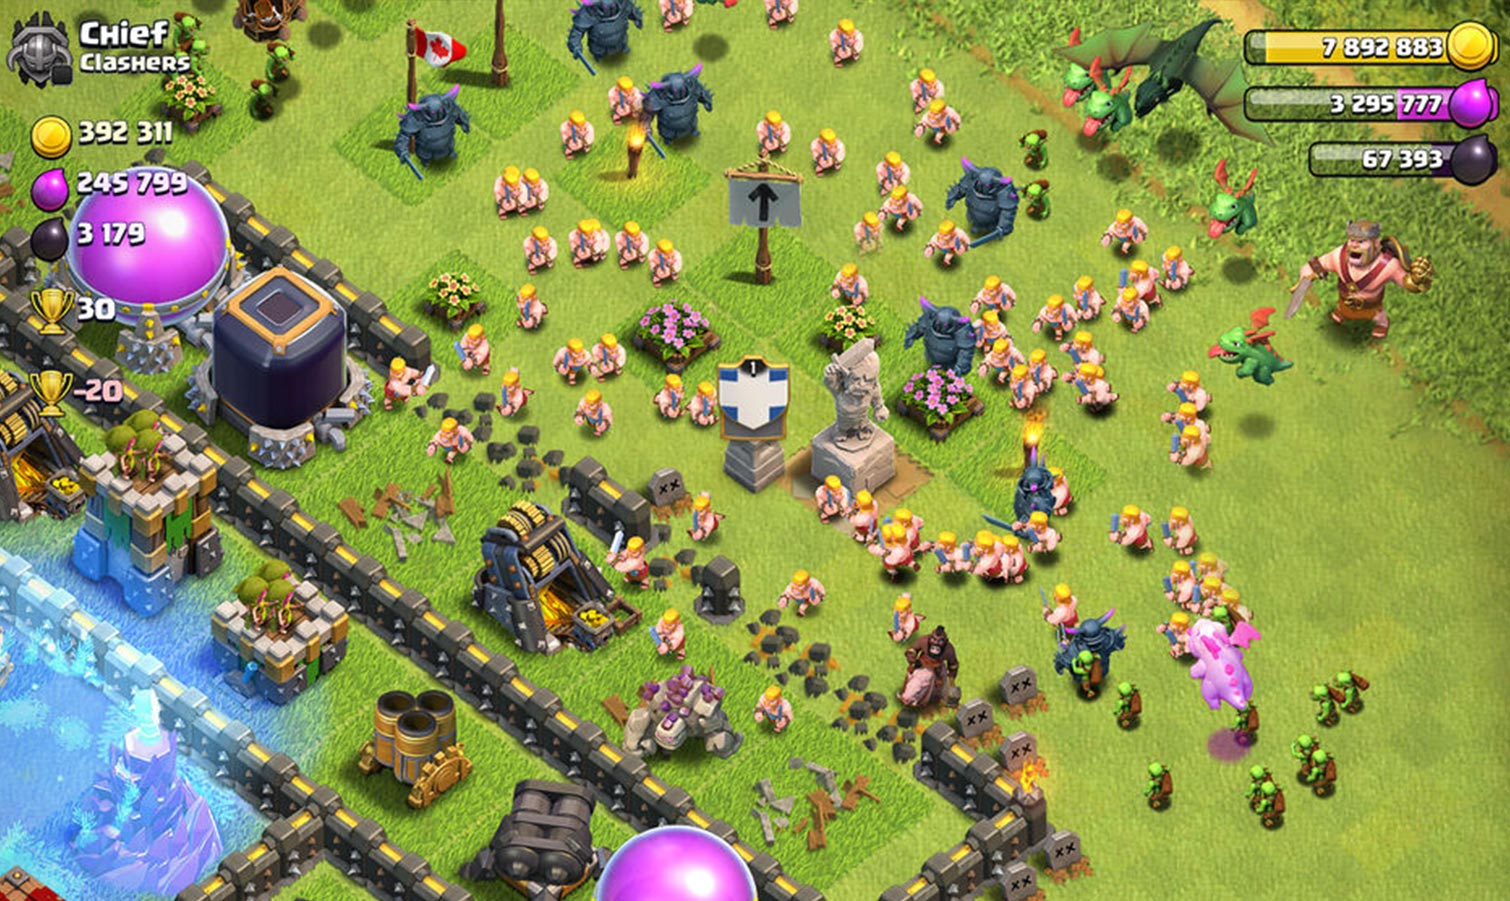 Help Me Tom's Guide: How Do I Restore My Clash of Clans Account? | Tom's  Guide